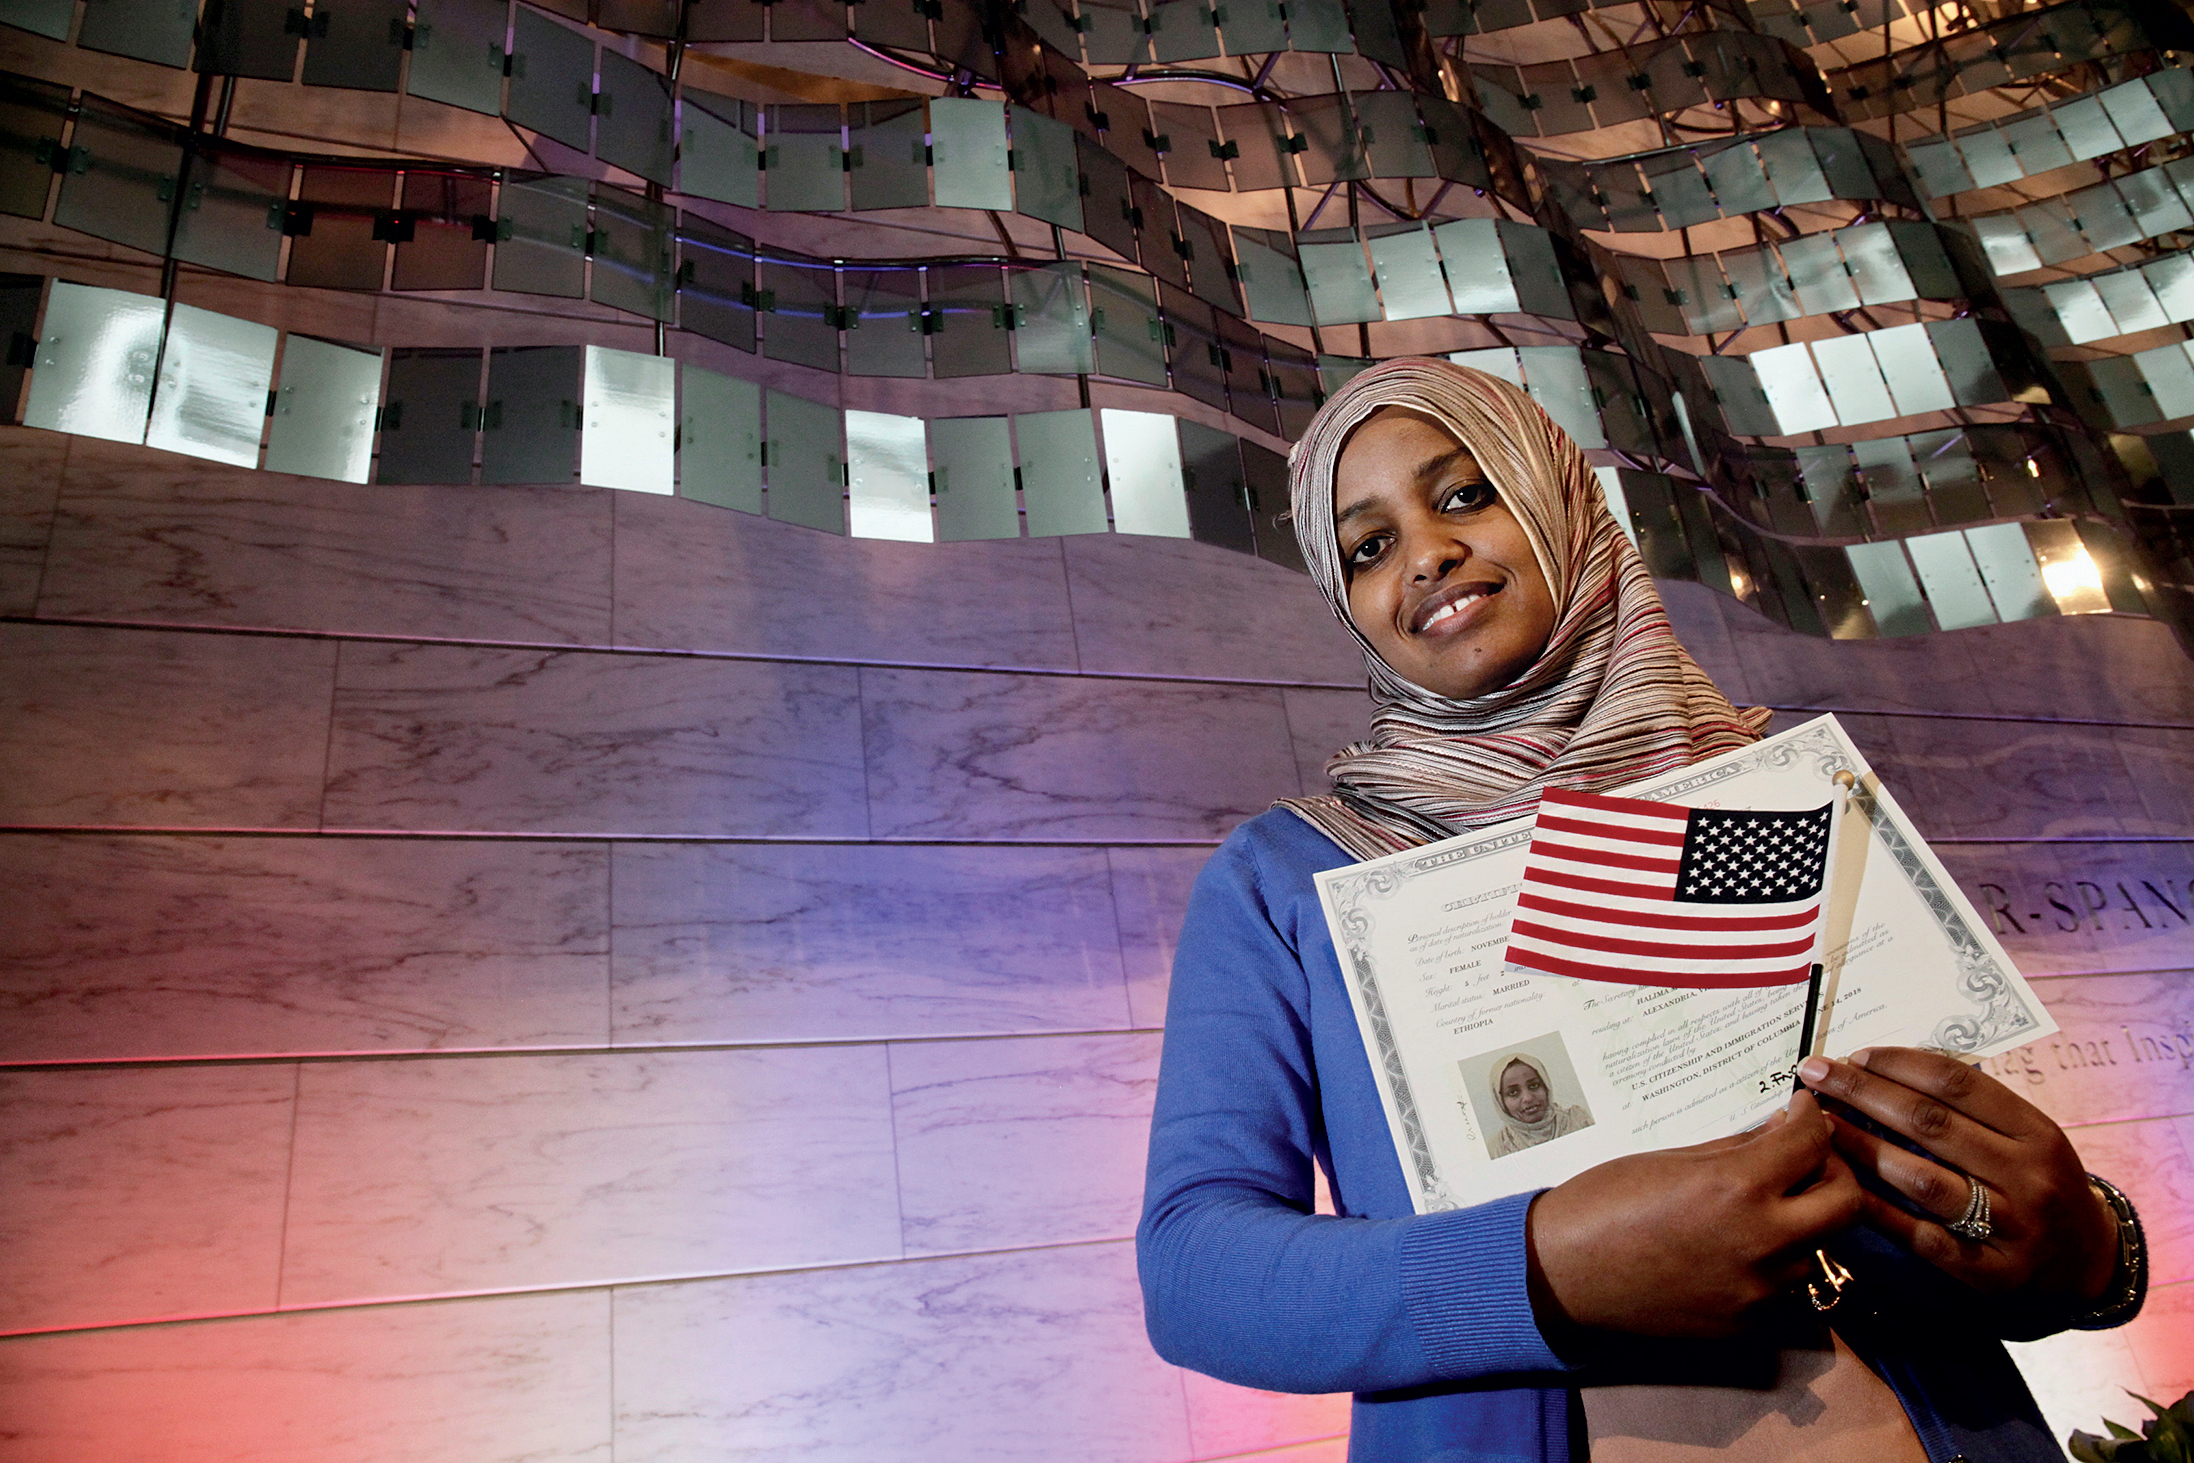 Photographs of Immigrants Becoming U.S. Citizens: National Museum of American History, June 14, 2018. The Flag Day ceremony took place in the building that houses the original Star-Spangled Banner that inspired Francis Scott Key.